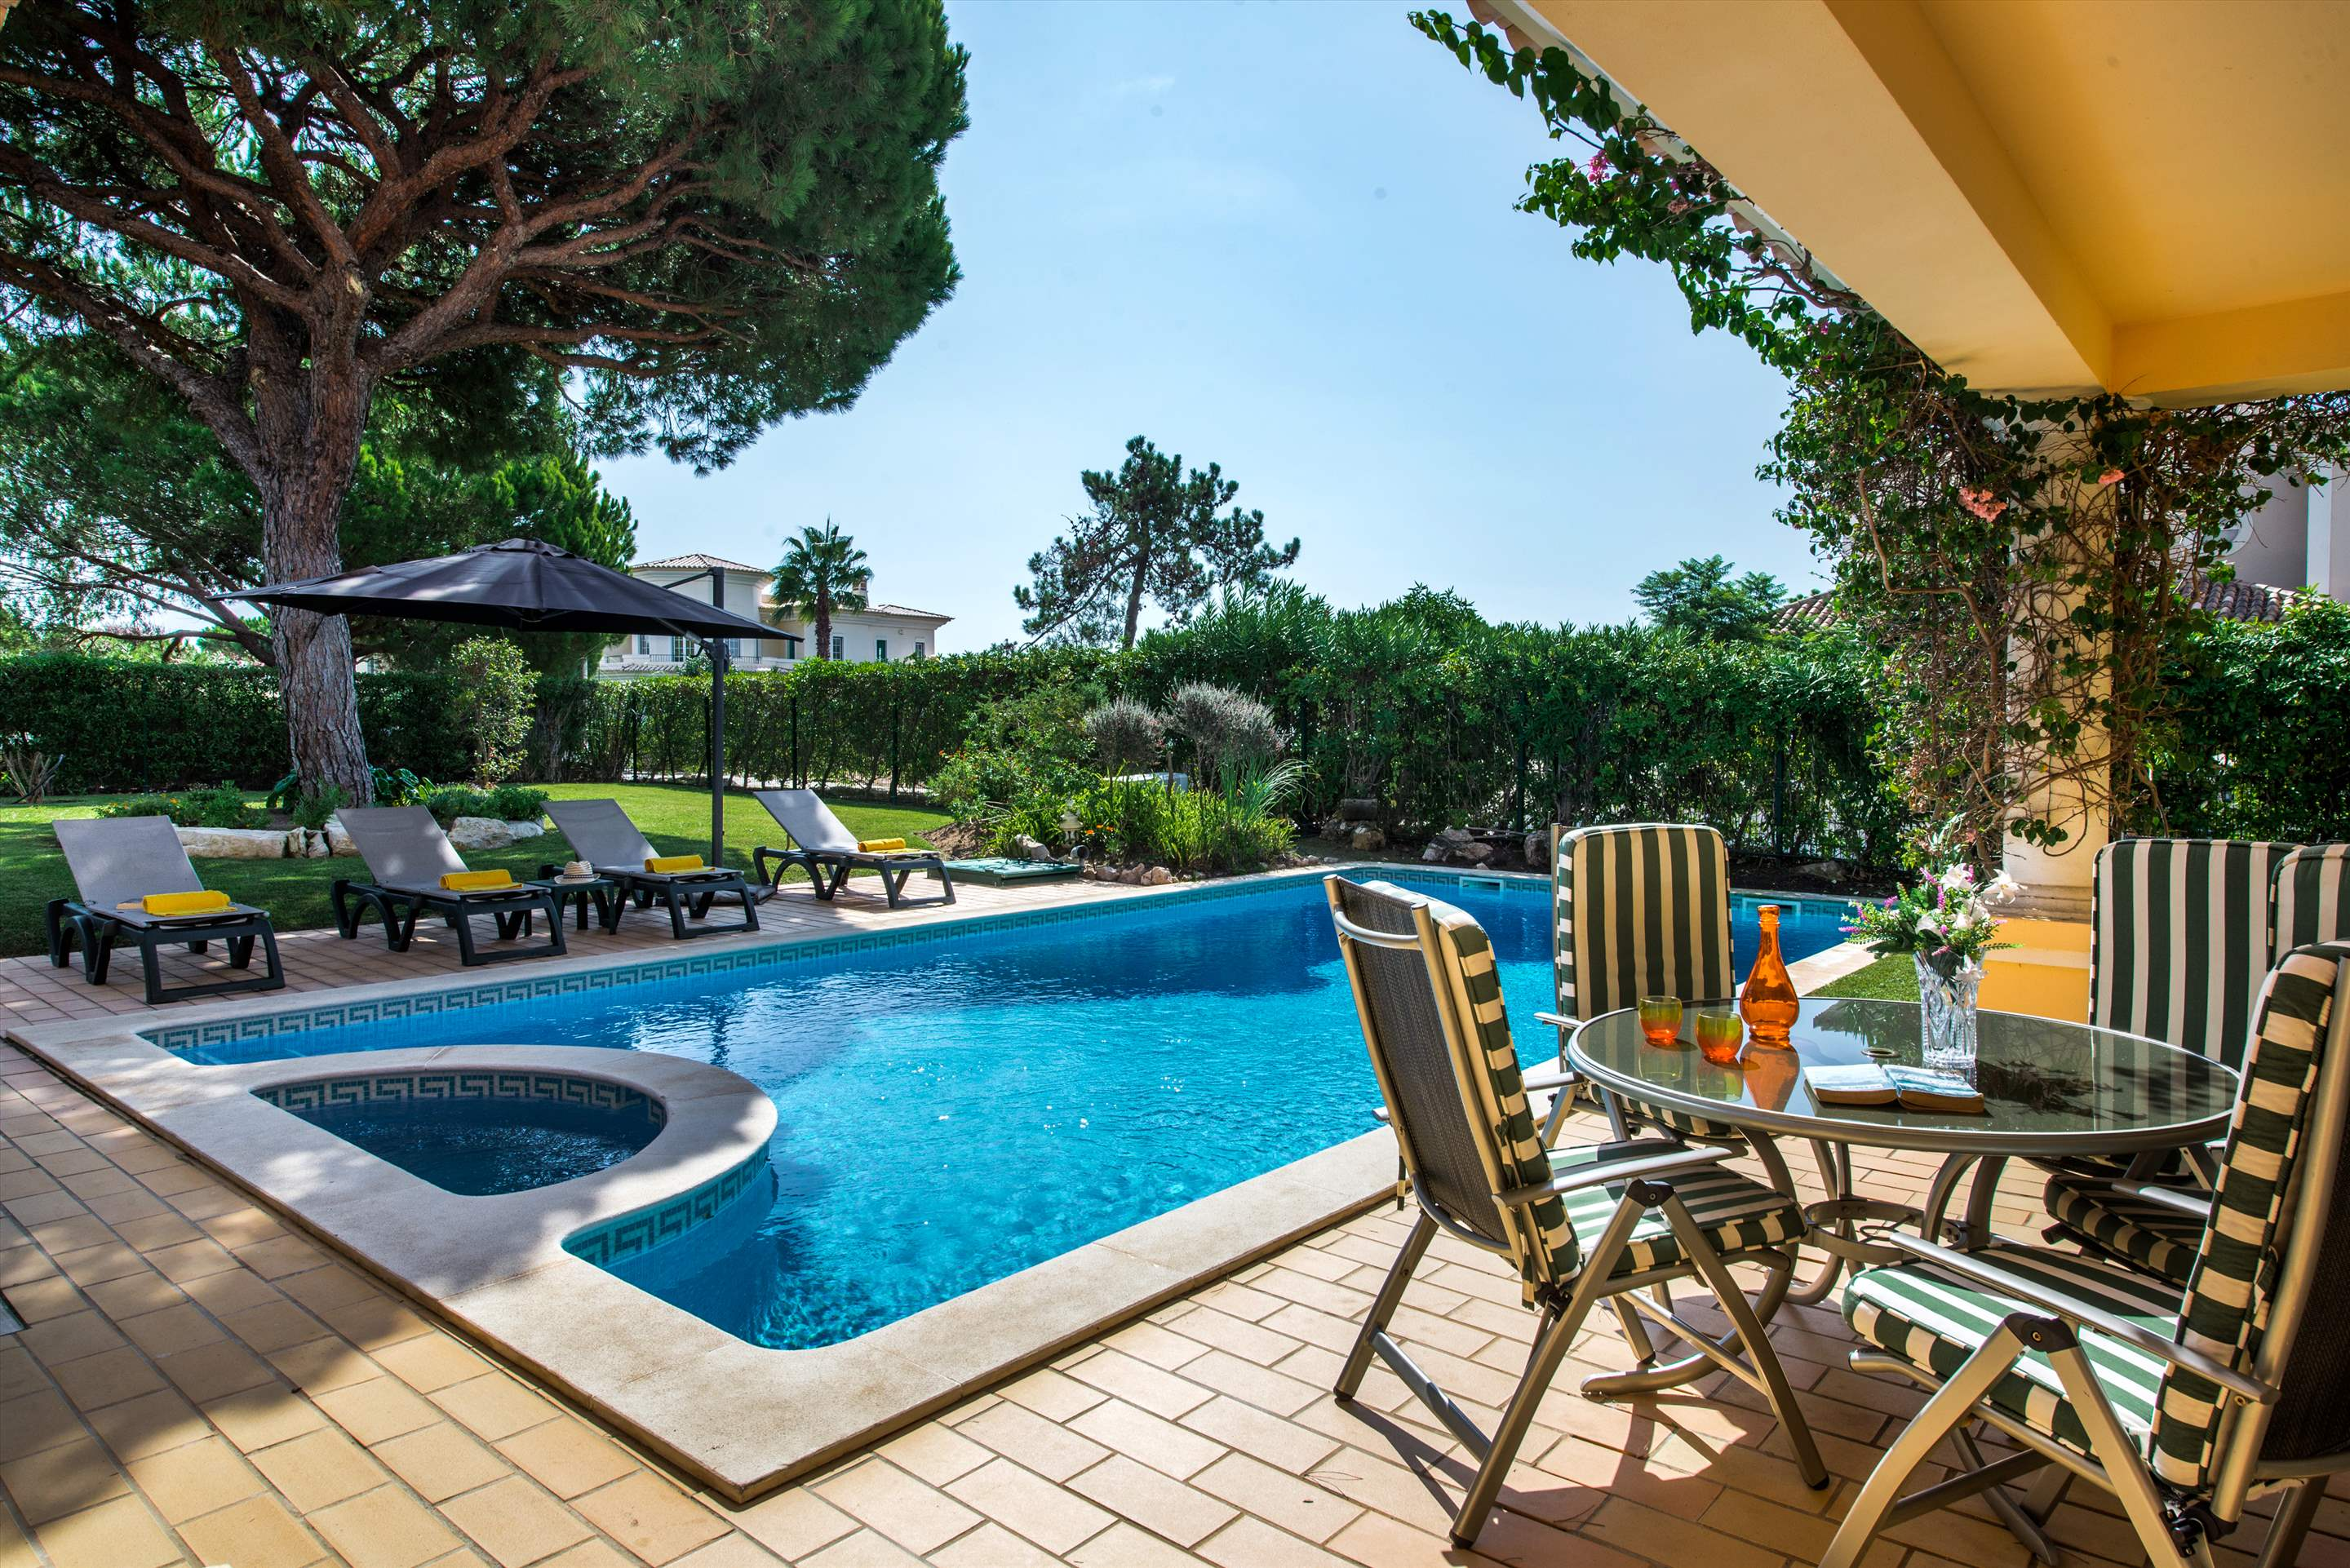 Casa da Encosta, 4 bedroom villa in Vale do Lobo, Algarve Photo #4